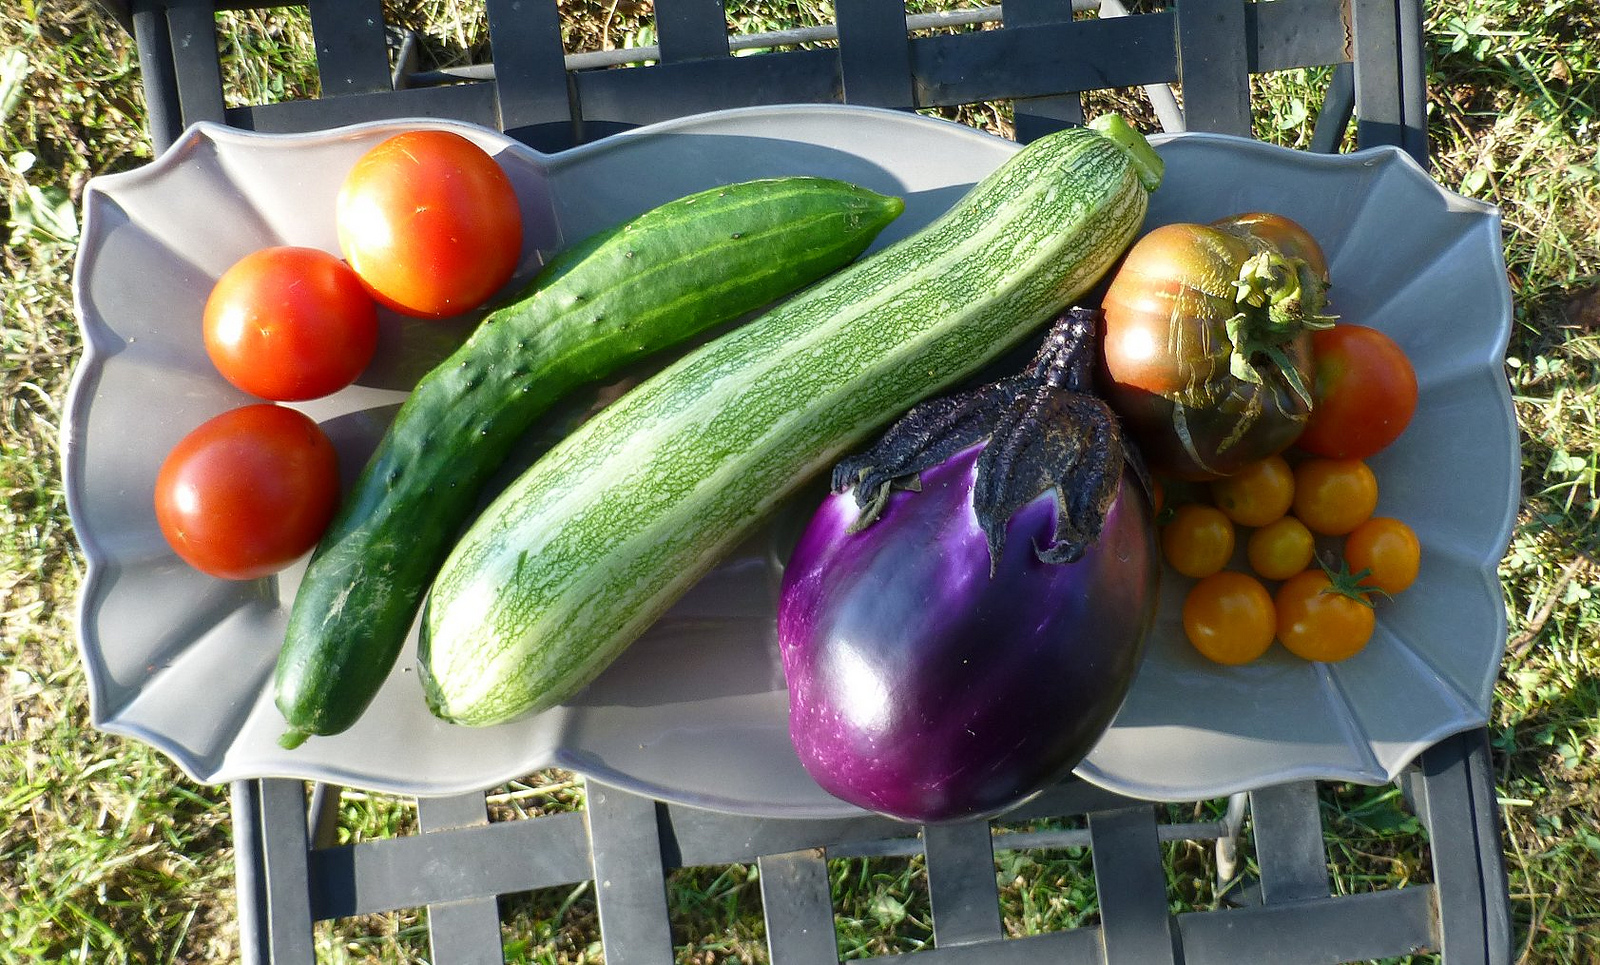 vegetables_nociveglia_Flickr